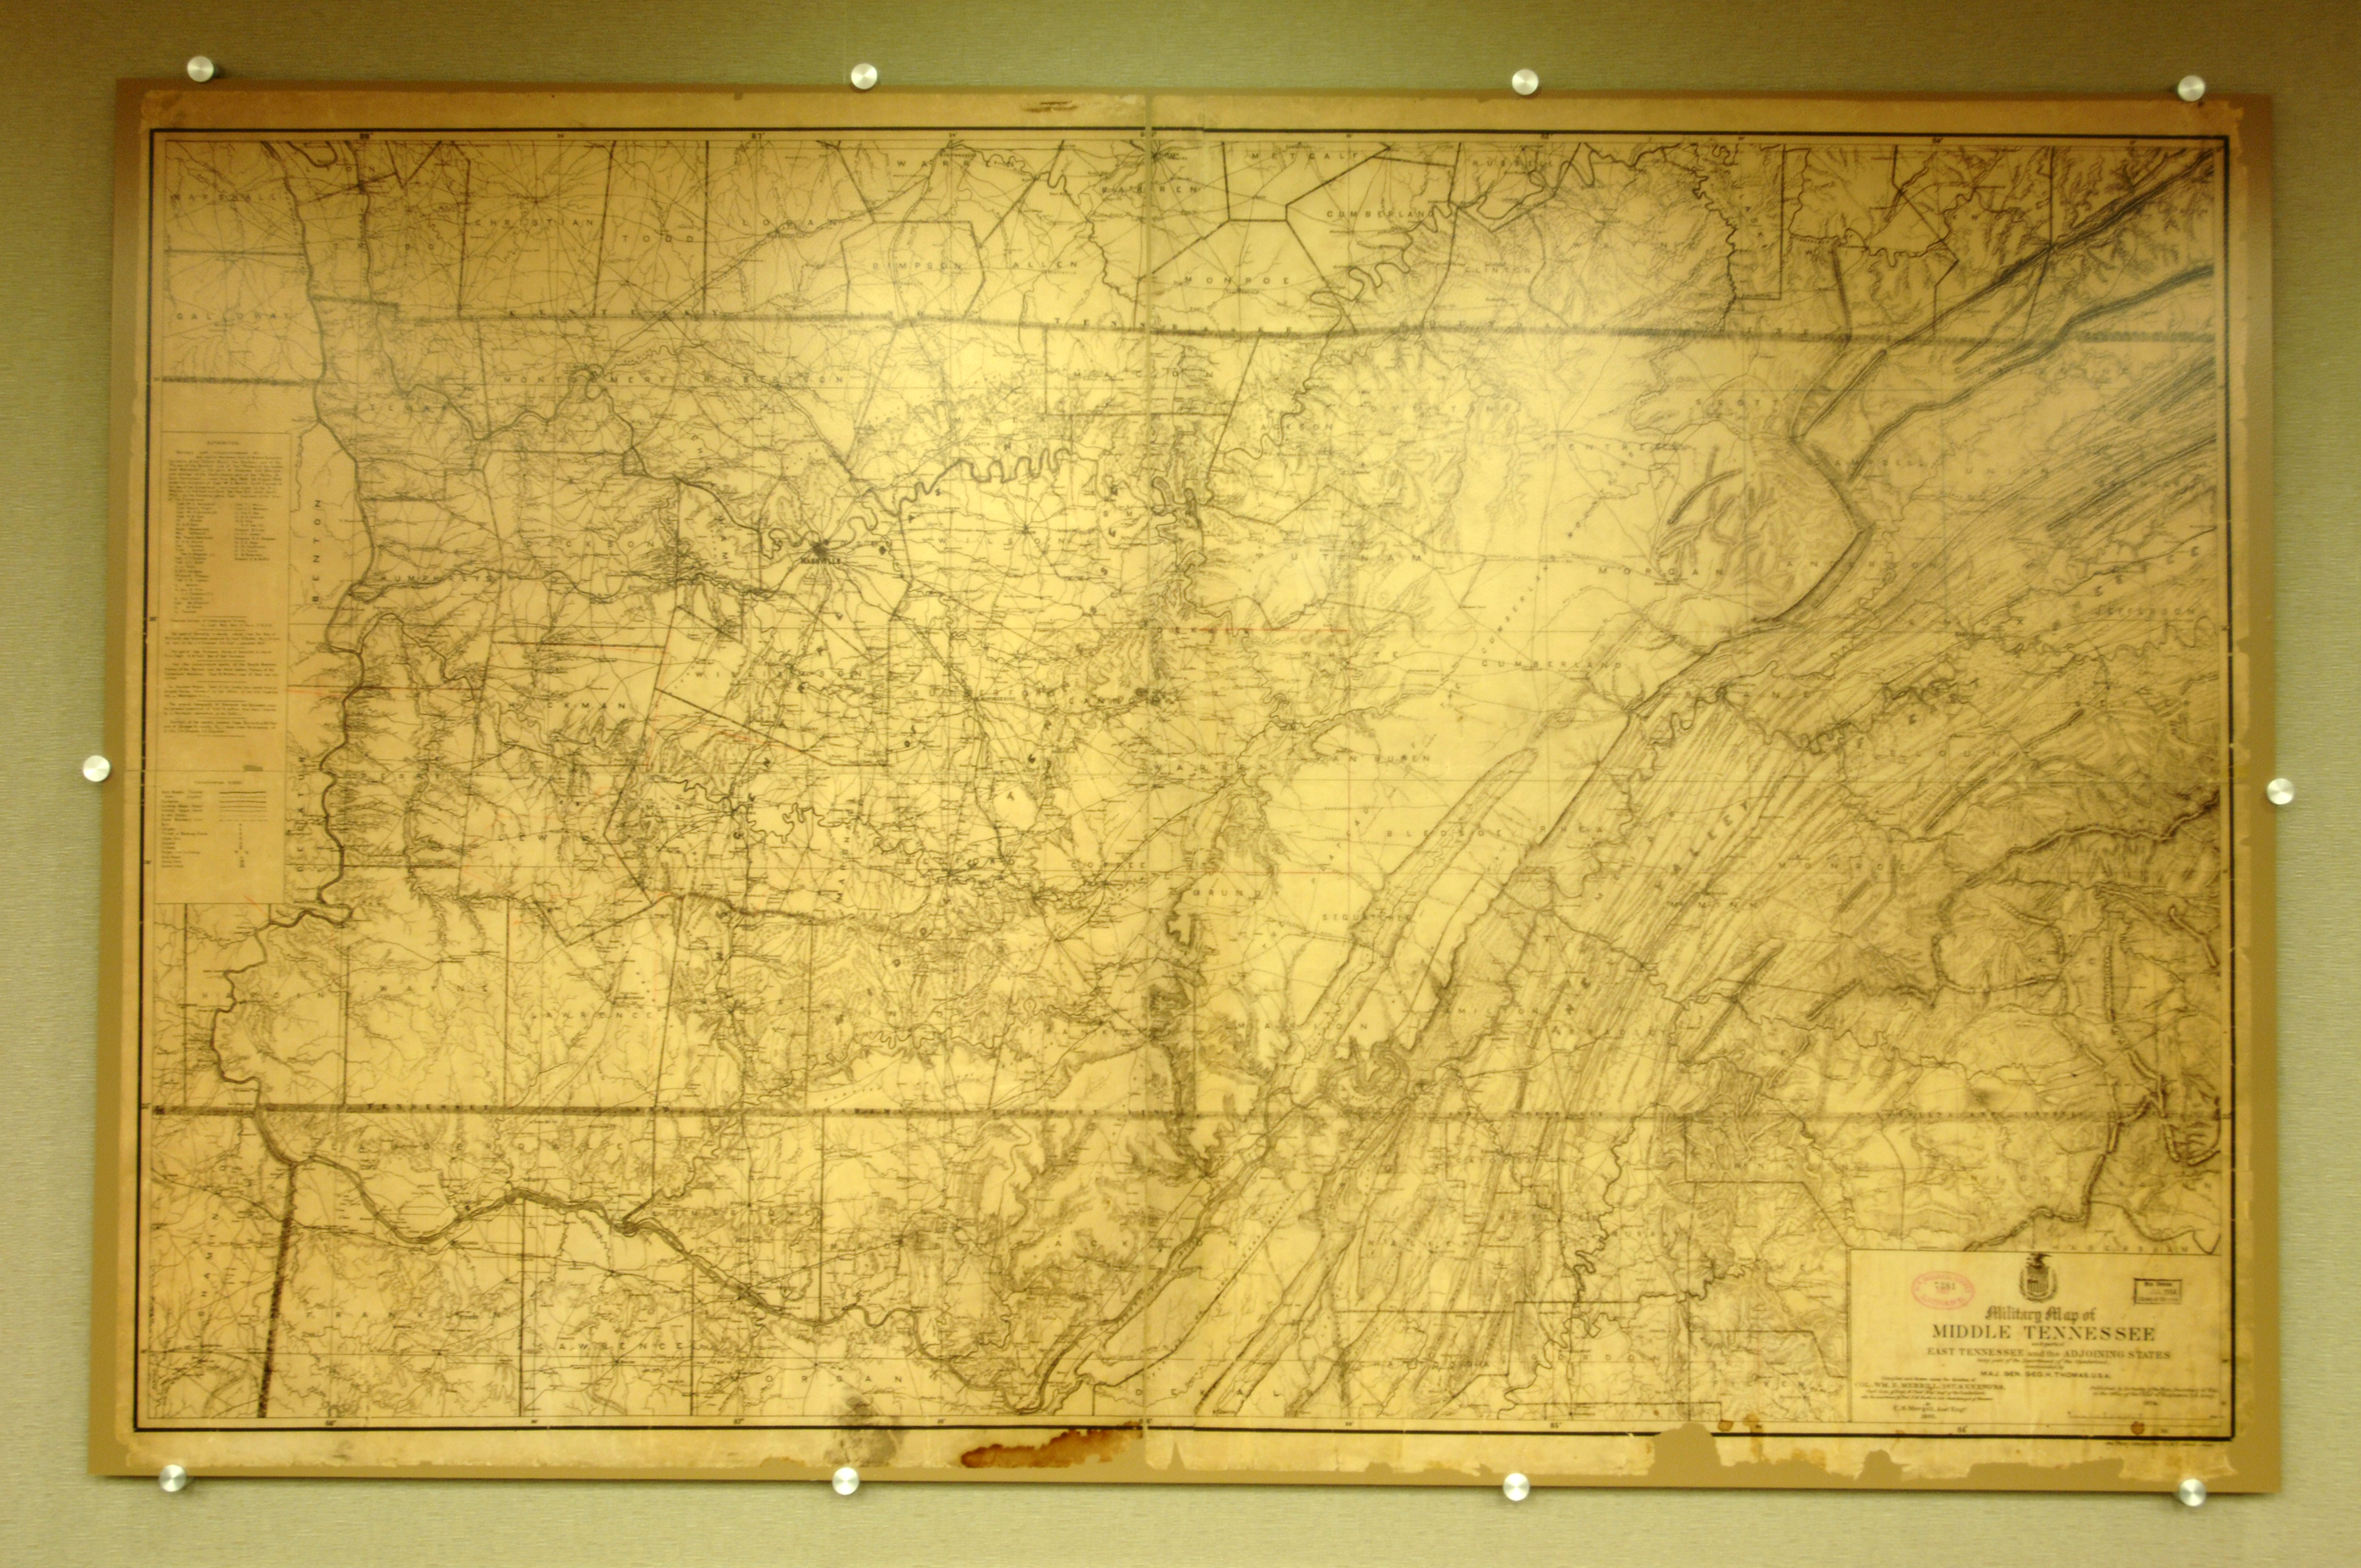 Nashville District showcasing historical maps from 1800s